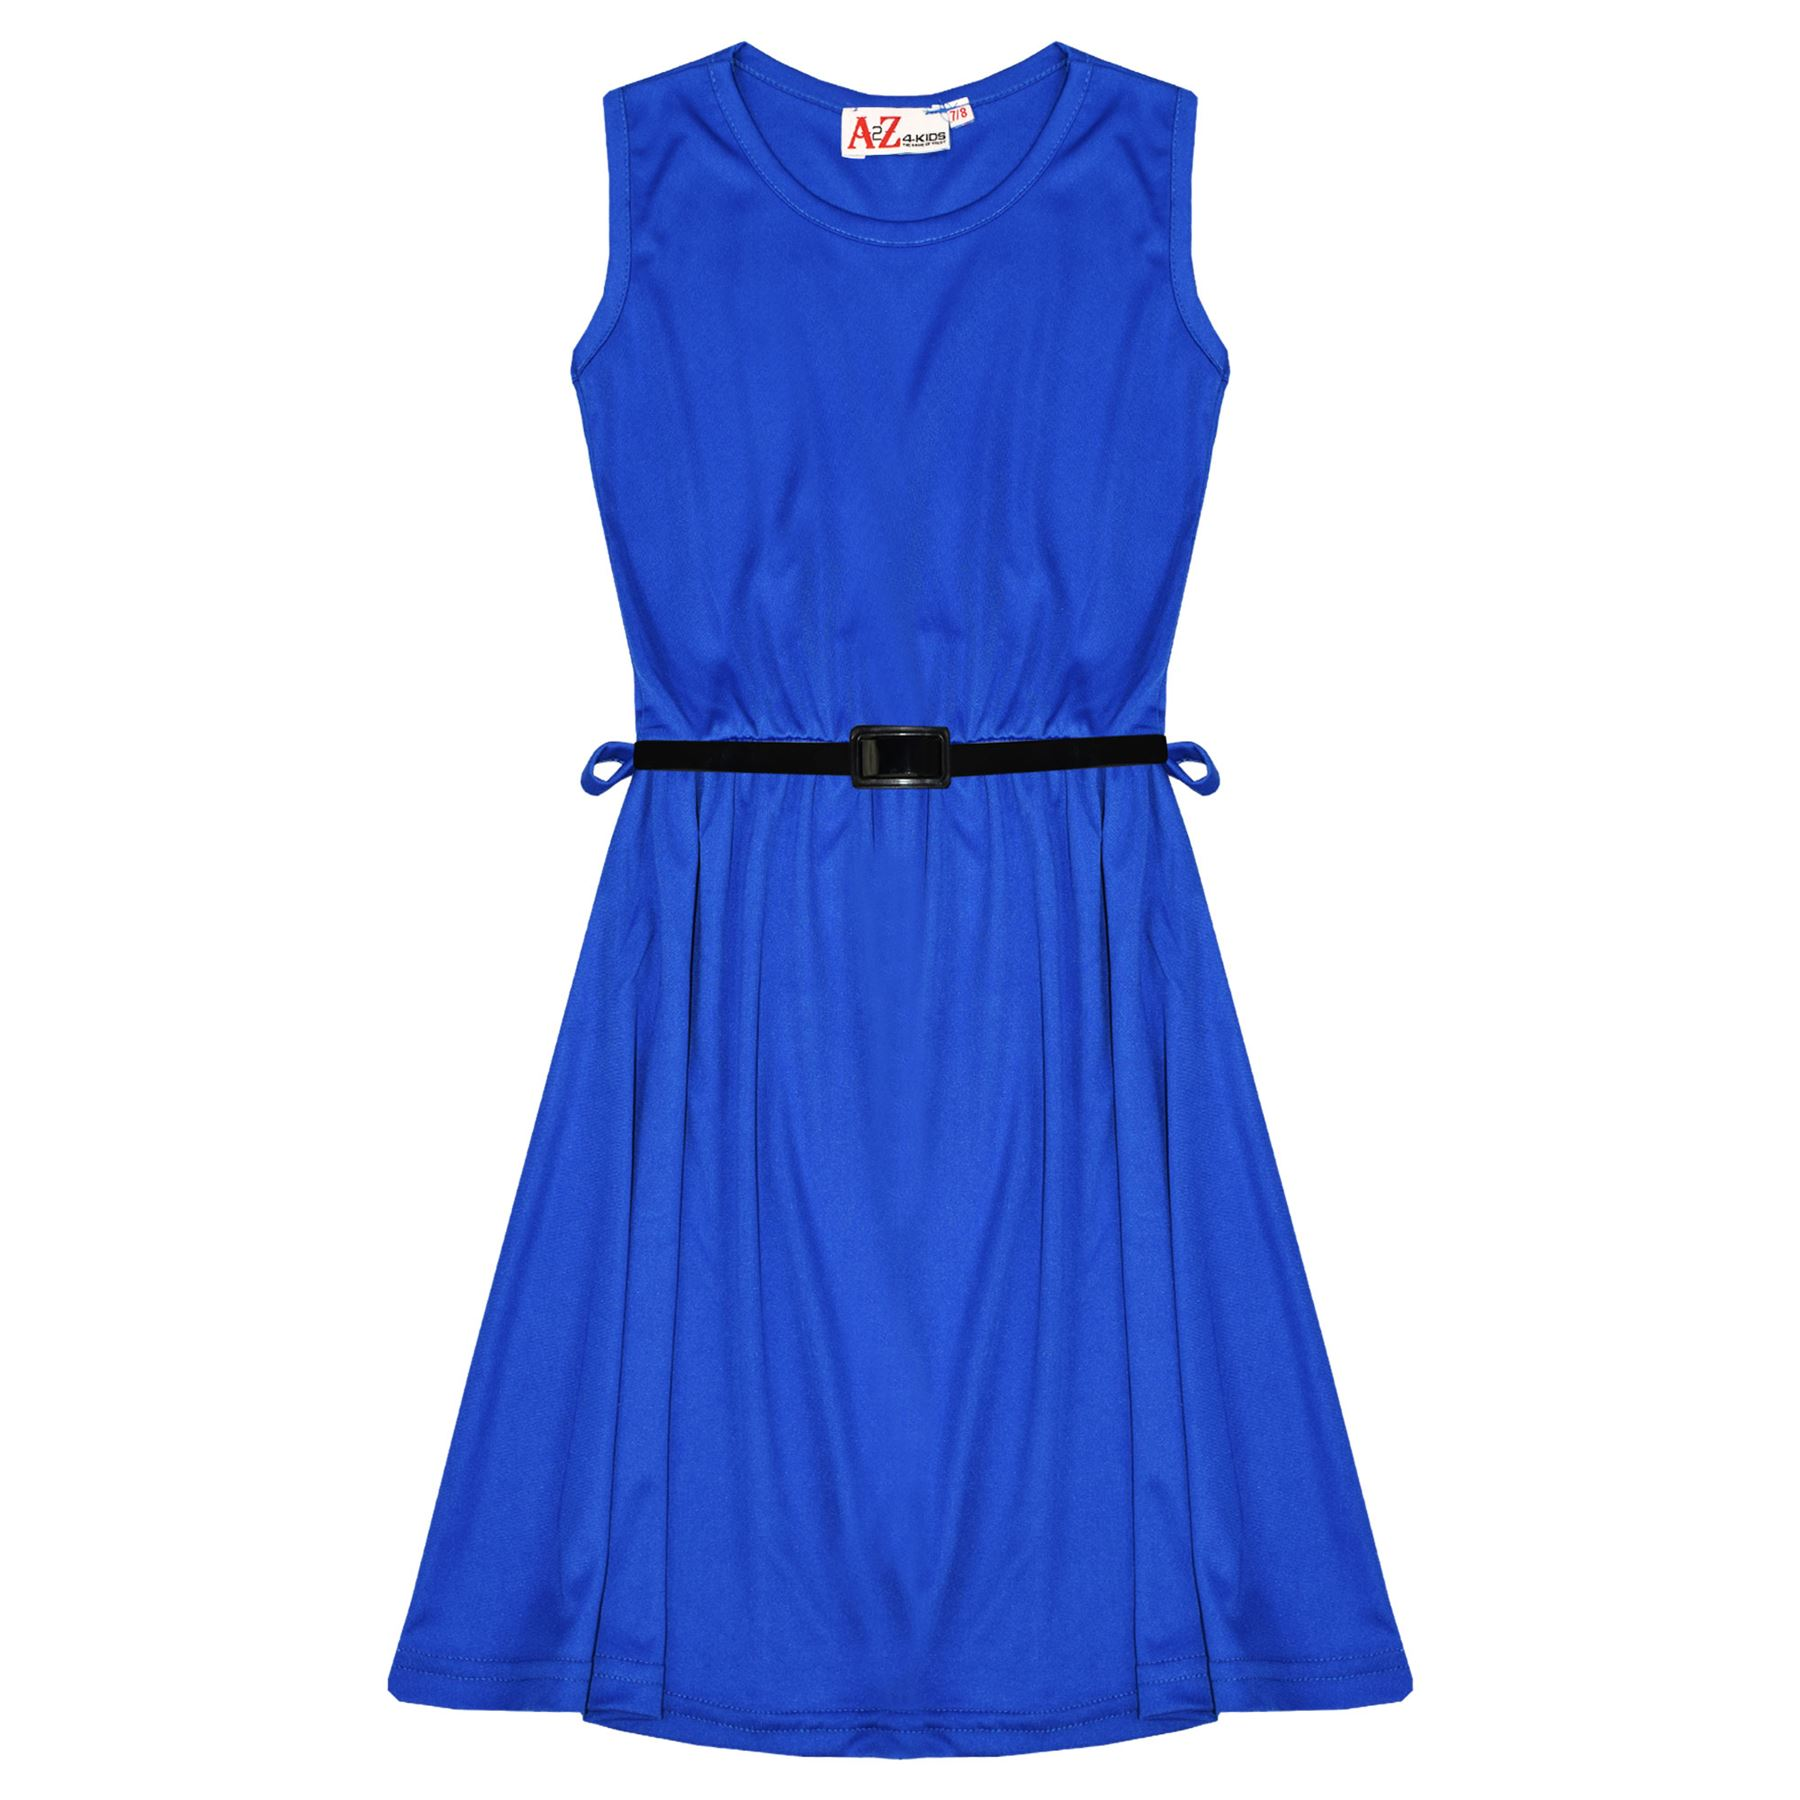 Girls-Skater-Dress-Kids-Party-Dresses-With-Free-Belt-5-6-7-8-9-10-11-12-13-Years thumbnail 71